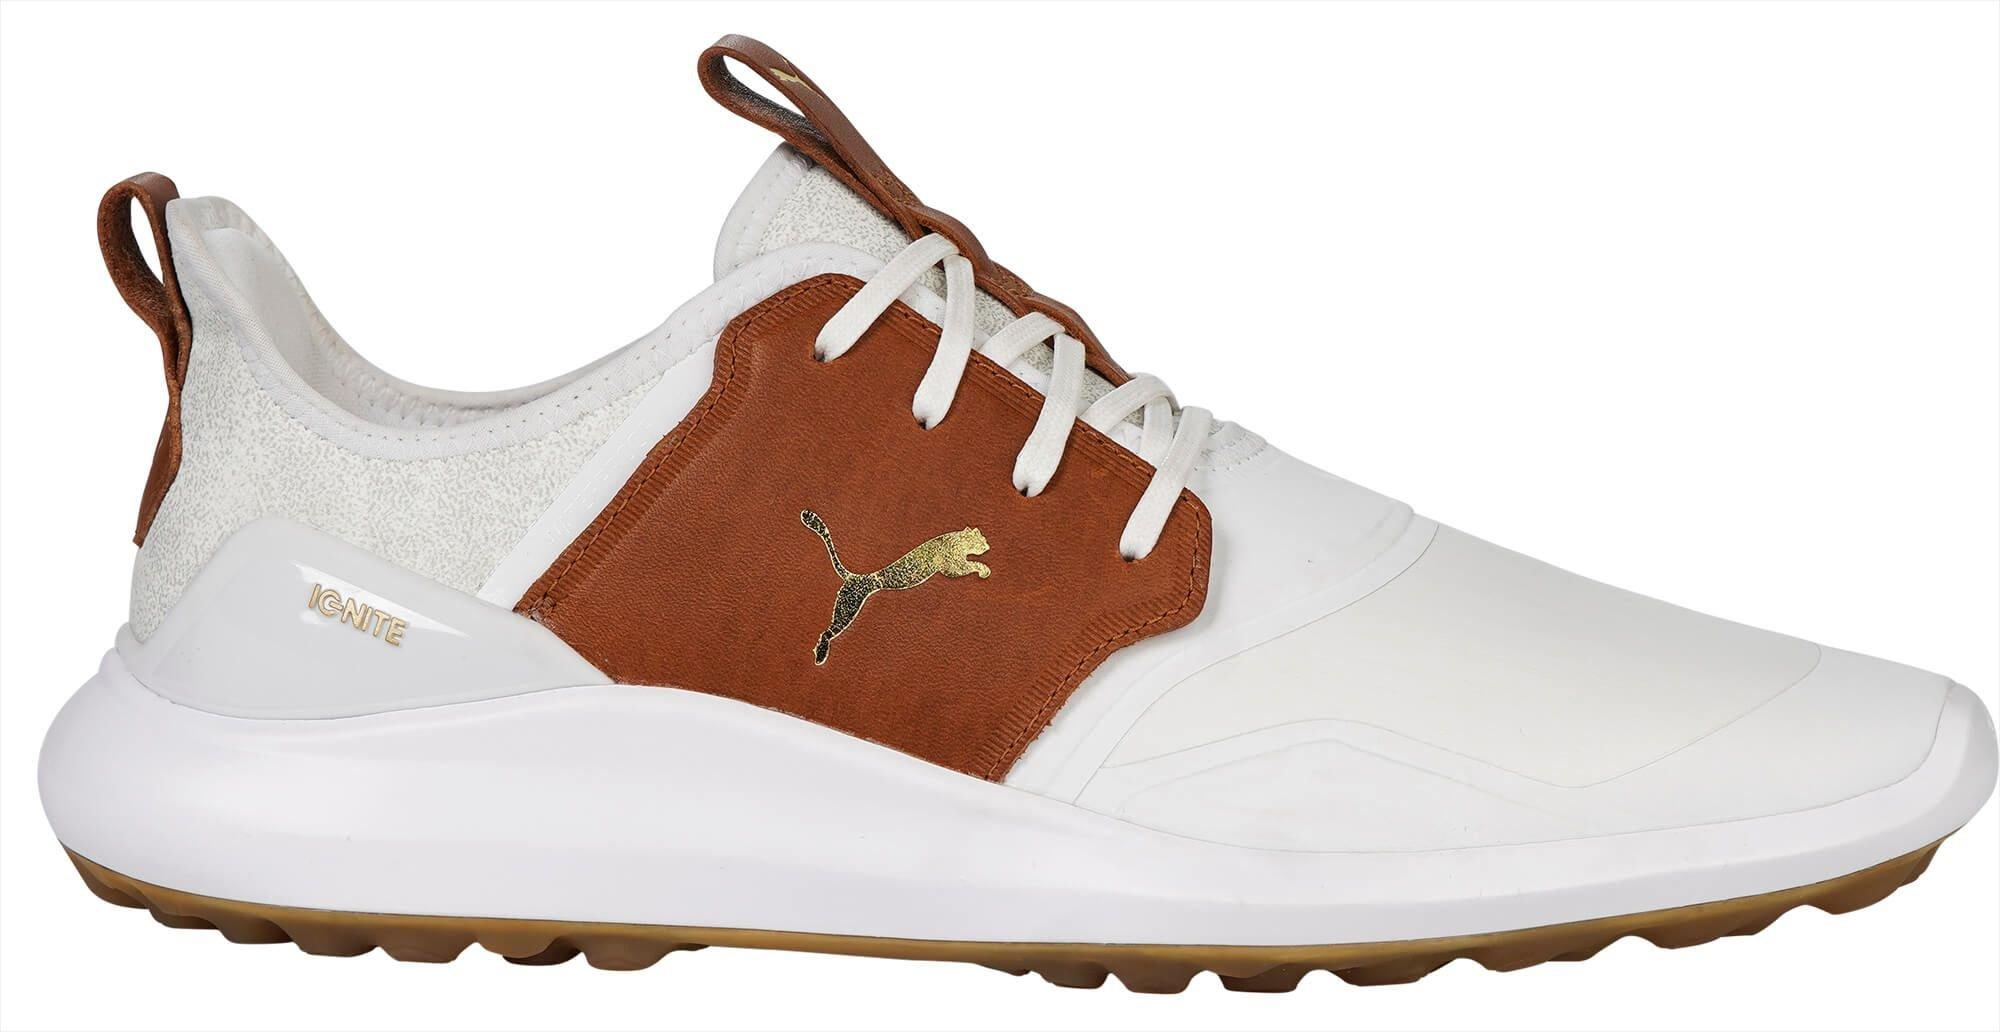 Puma IGNITE NXT Crafted Golf Shoes 2020